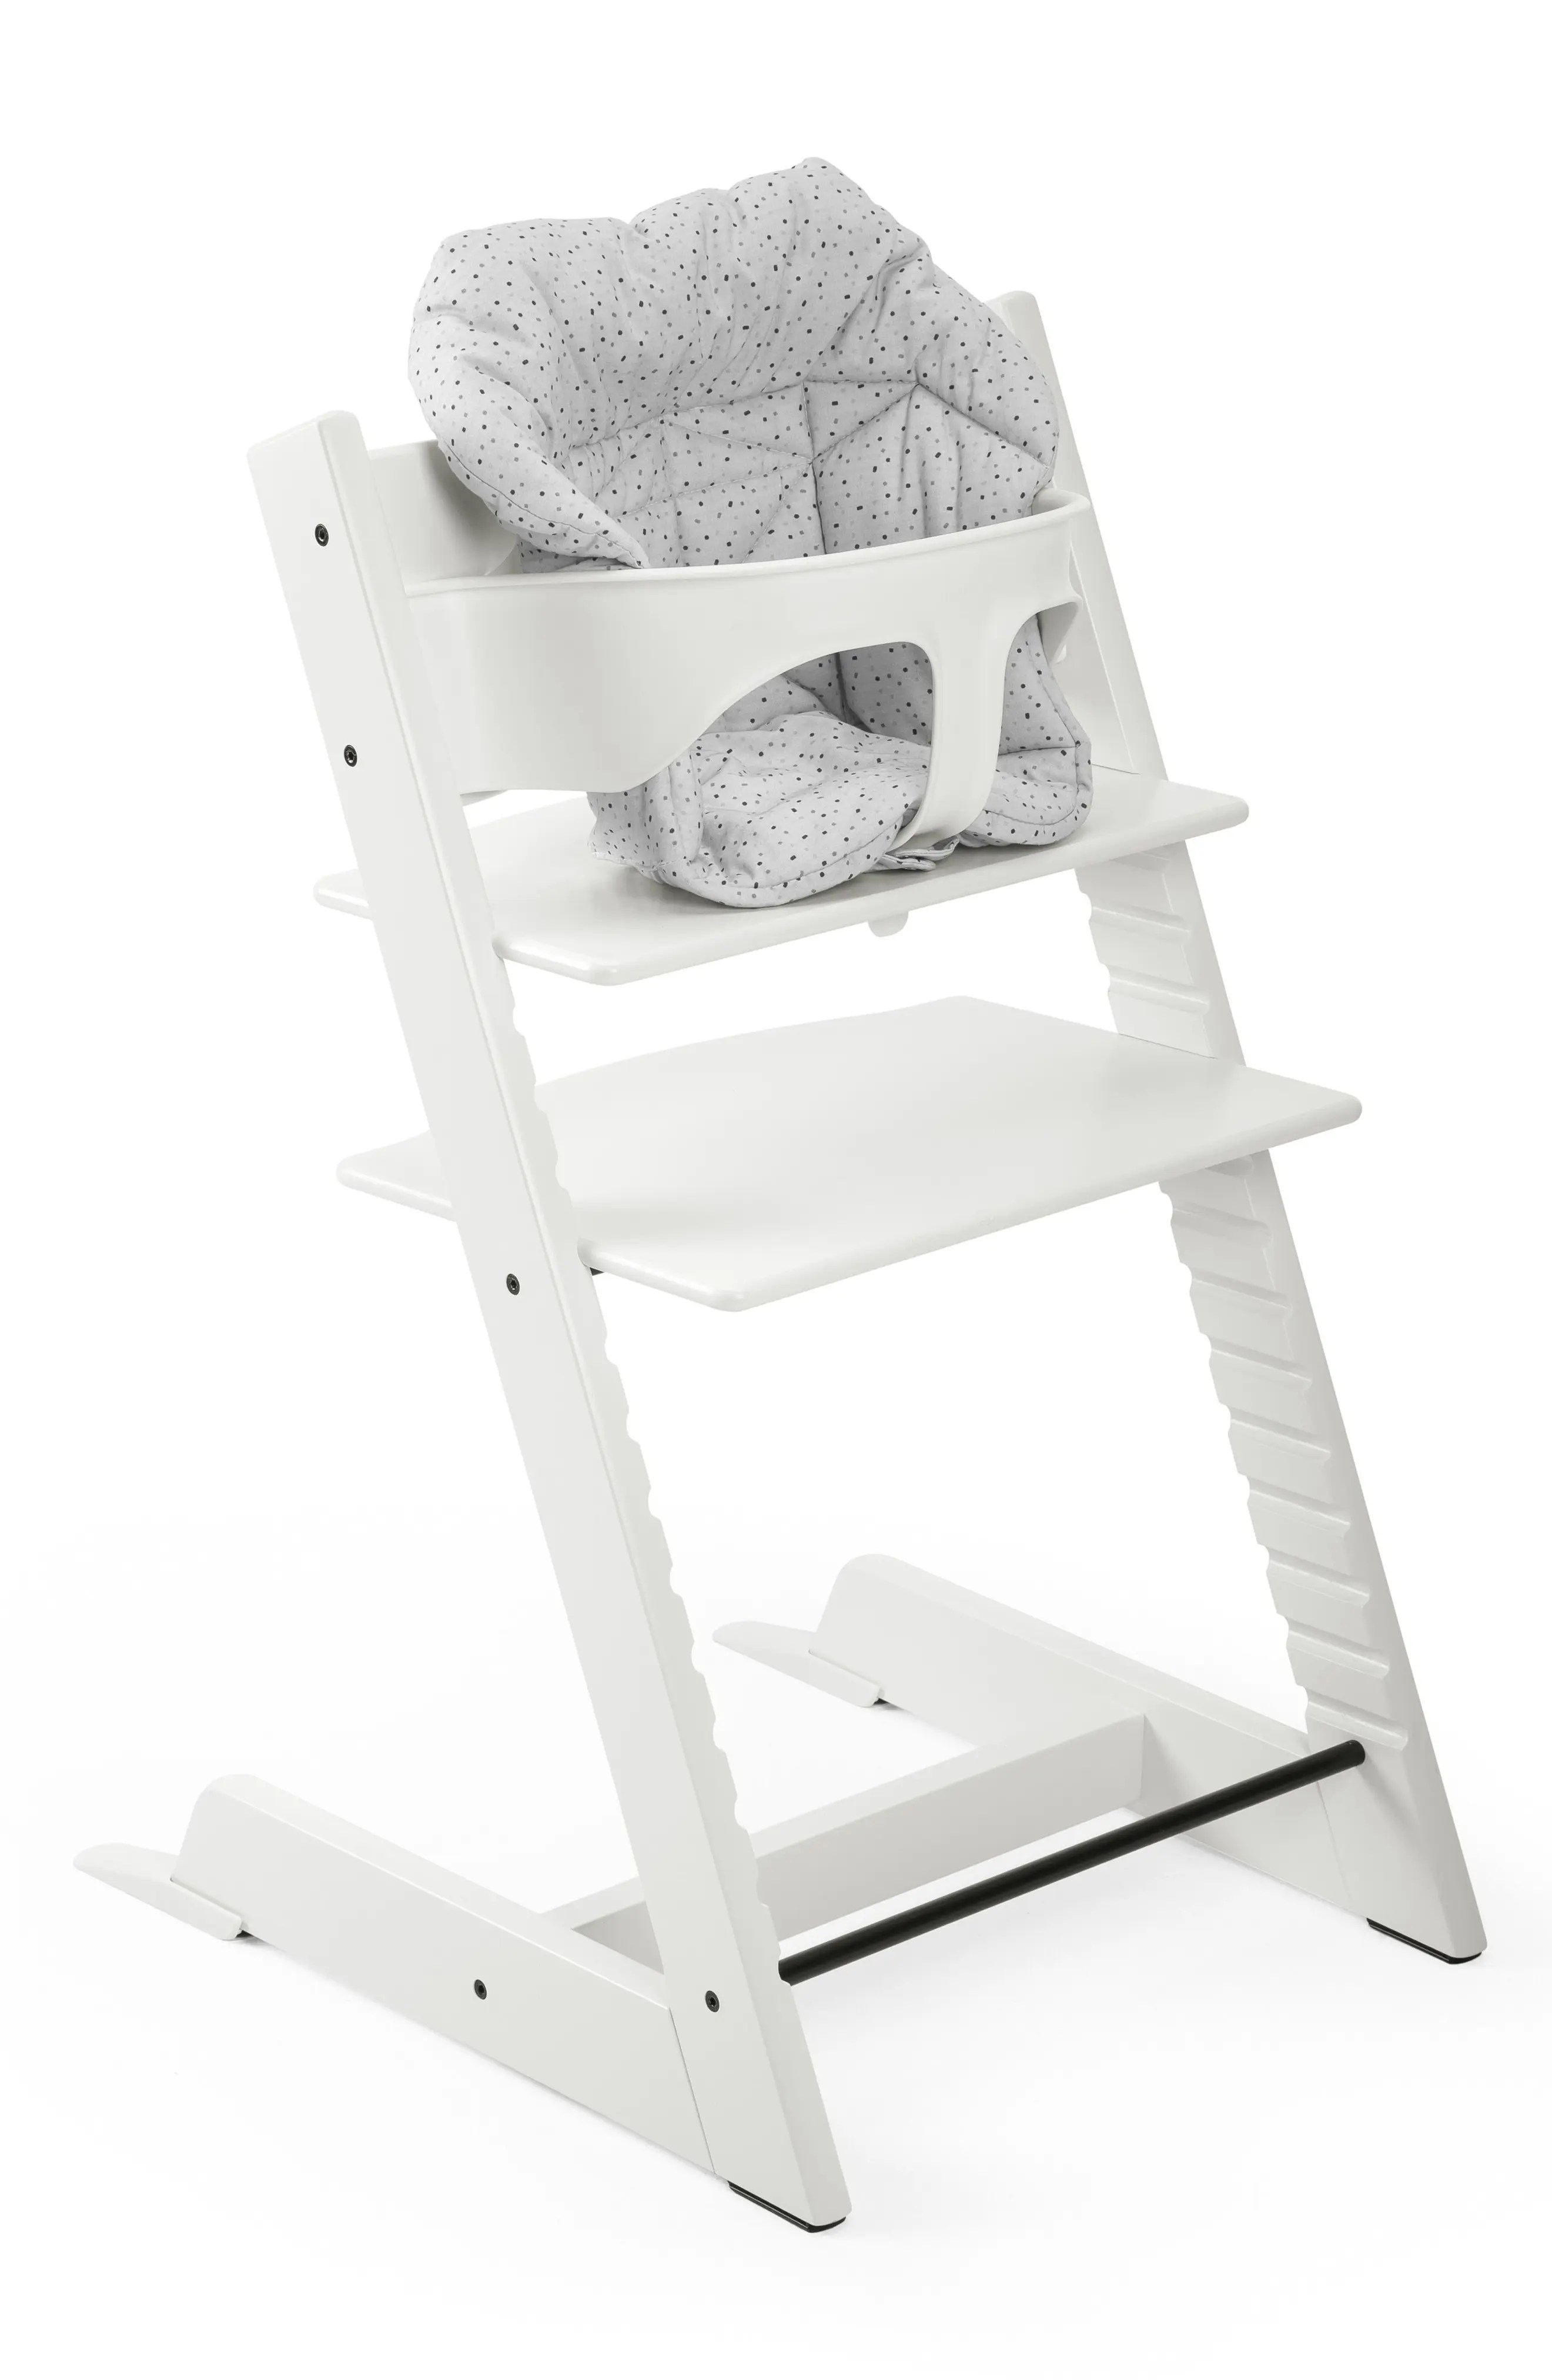 high chairs for babies disney chair covers booster seats tables nordstrom product image